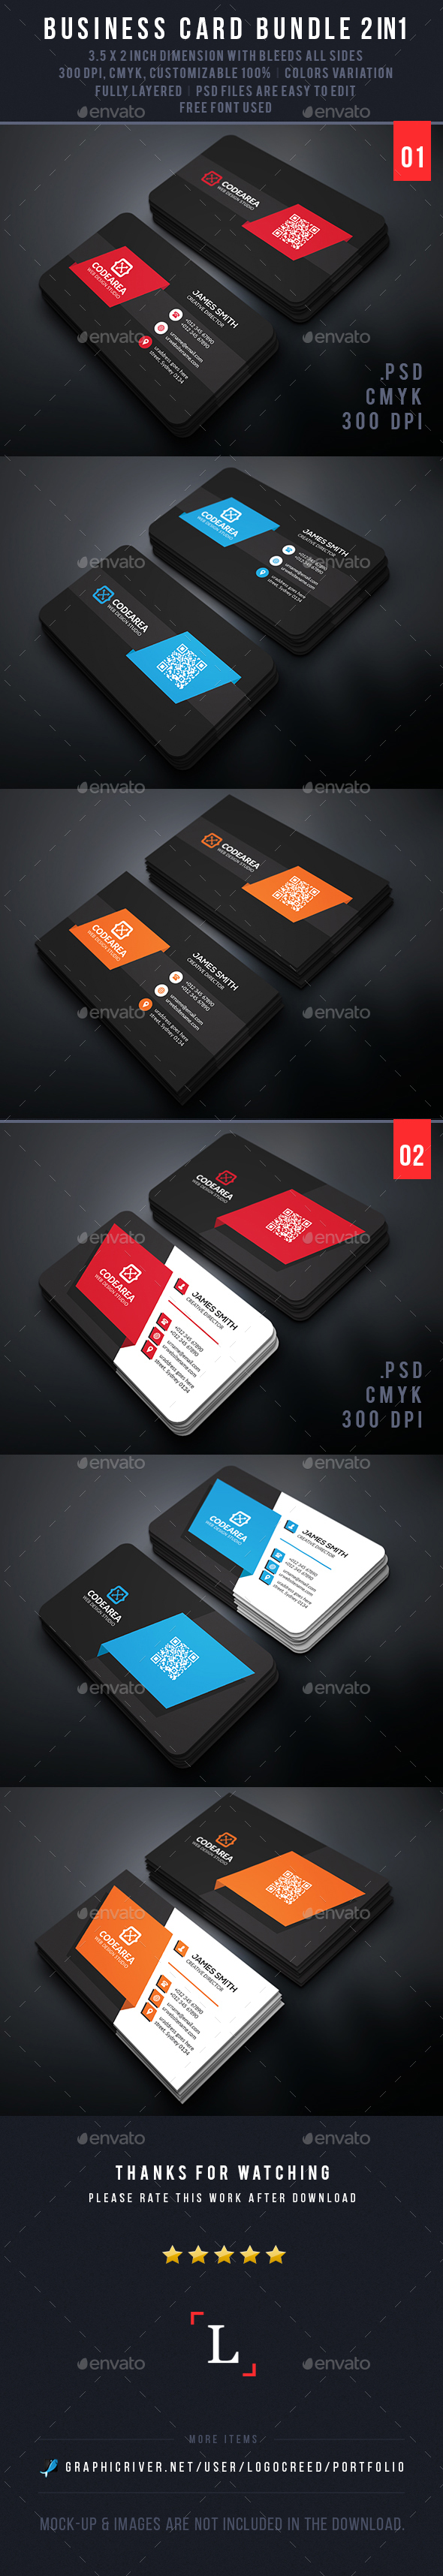 Shape Business Card Bundle - Business Cards Print Templates